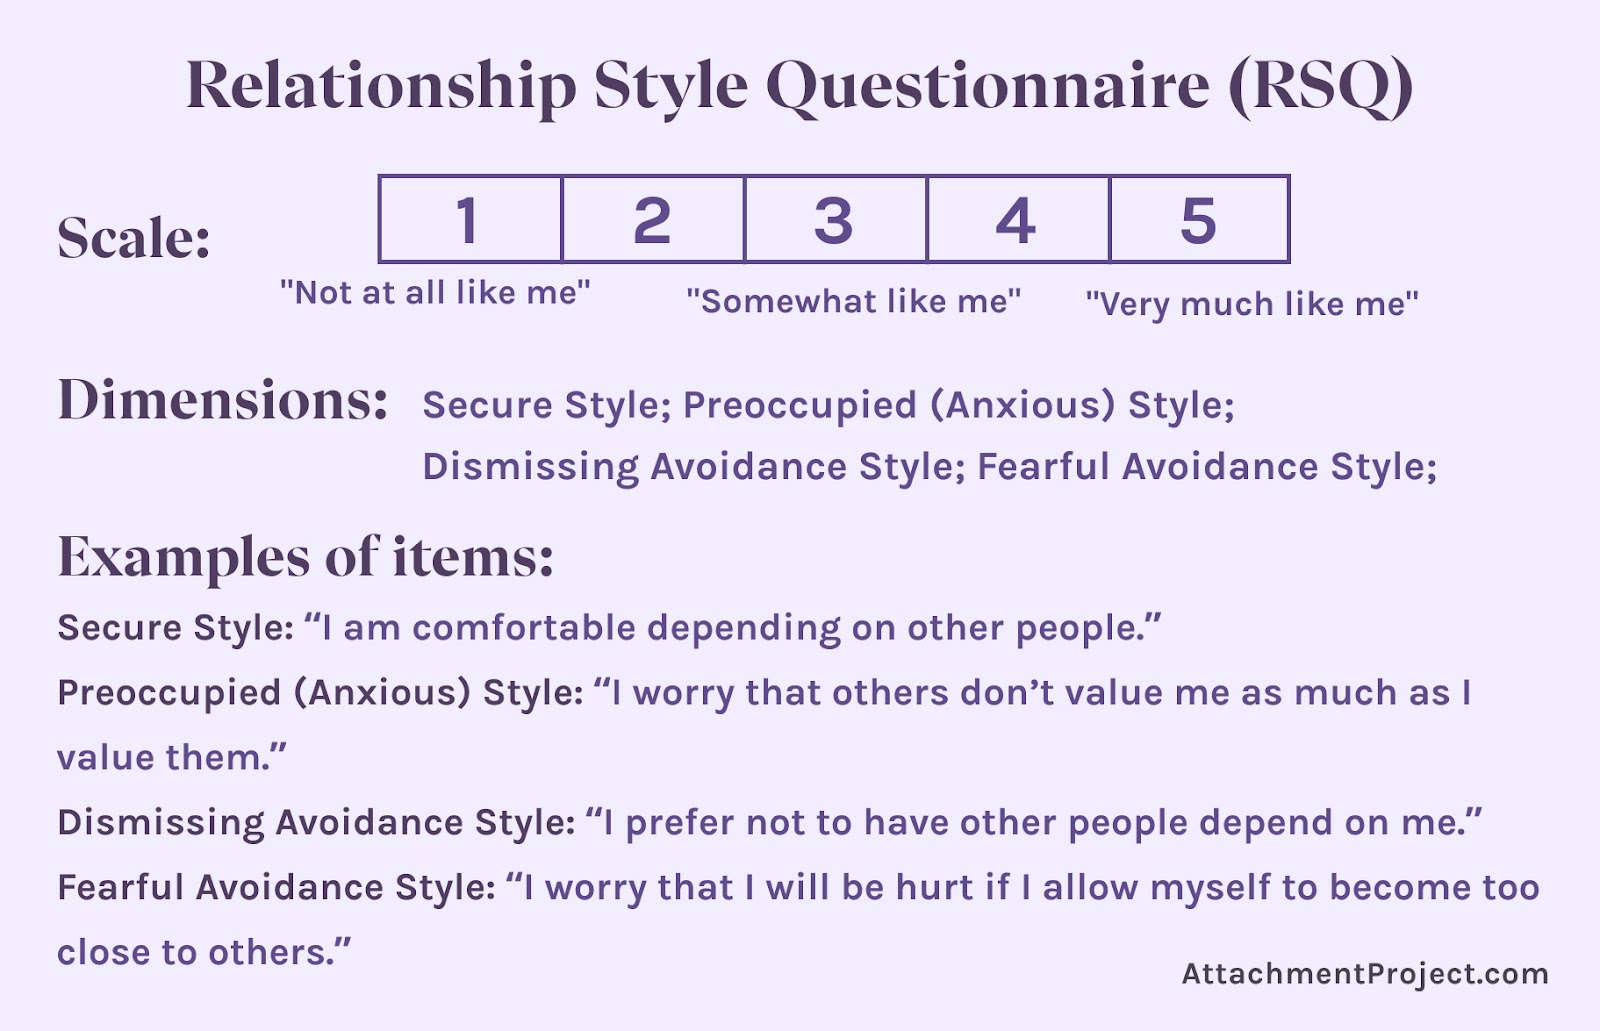 Attachment Style Tests - 4. Relationship Style Questionnaire (RSQ)